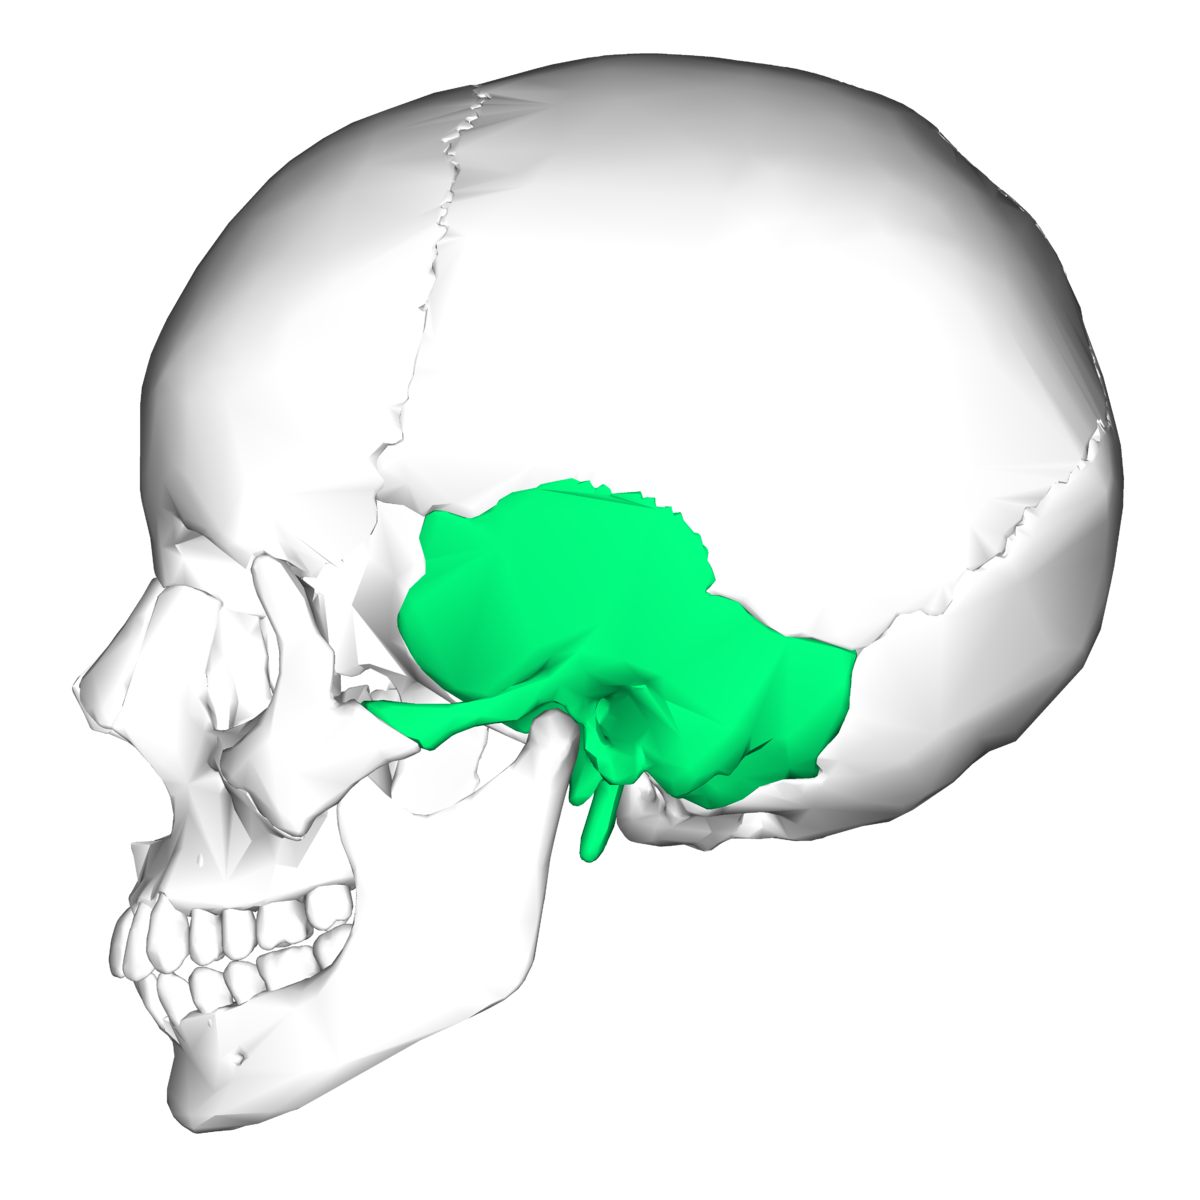 Temporal bone - Wikipedia